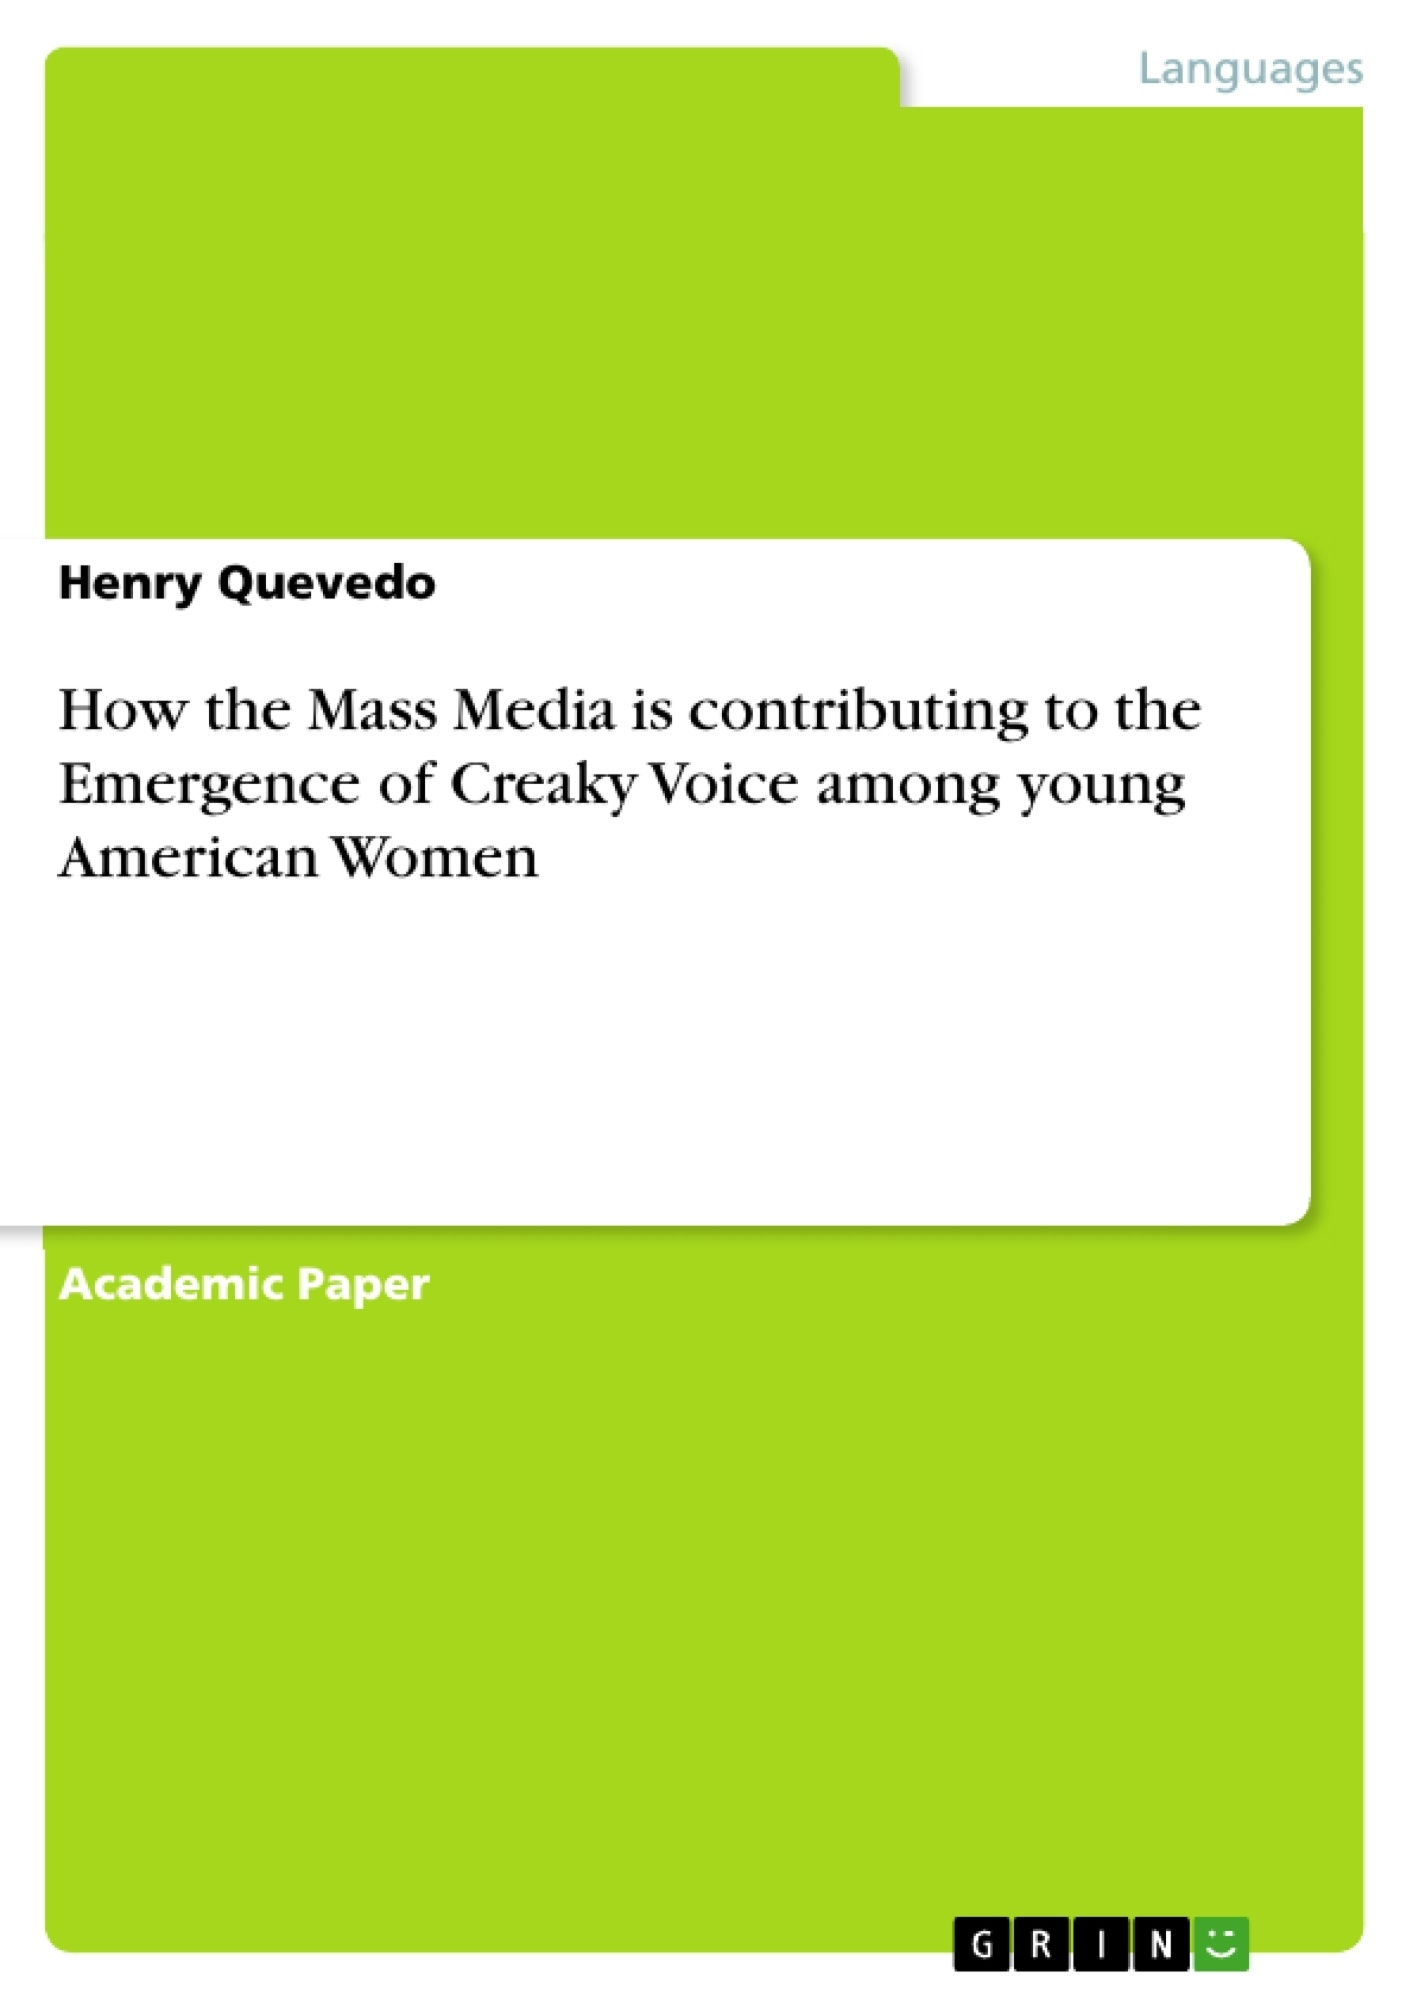 Title: How the Mass Media is contributing to the Emergence of Creaky Voice among young American Women